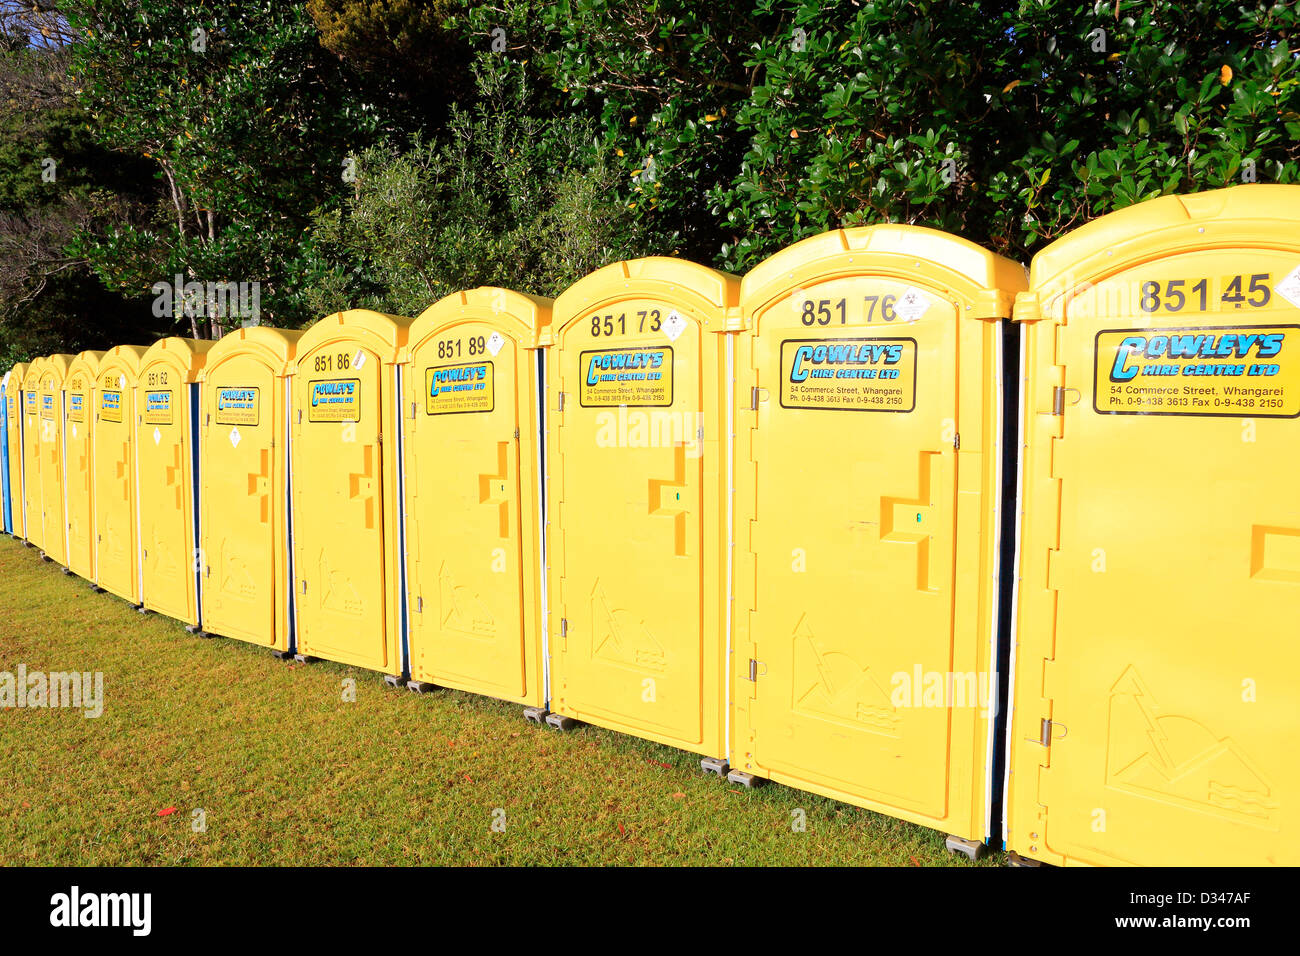 Portaloo portable toilets set up for public event. - Stock Image